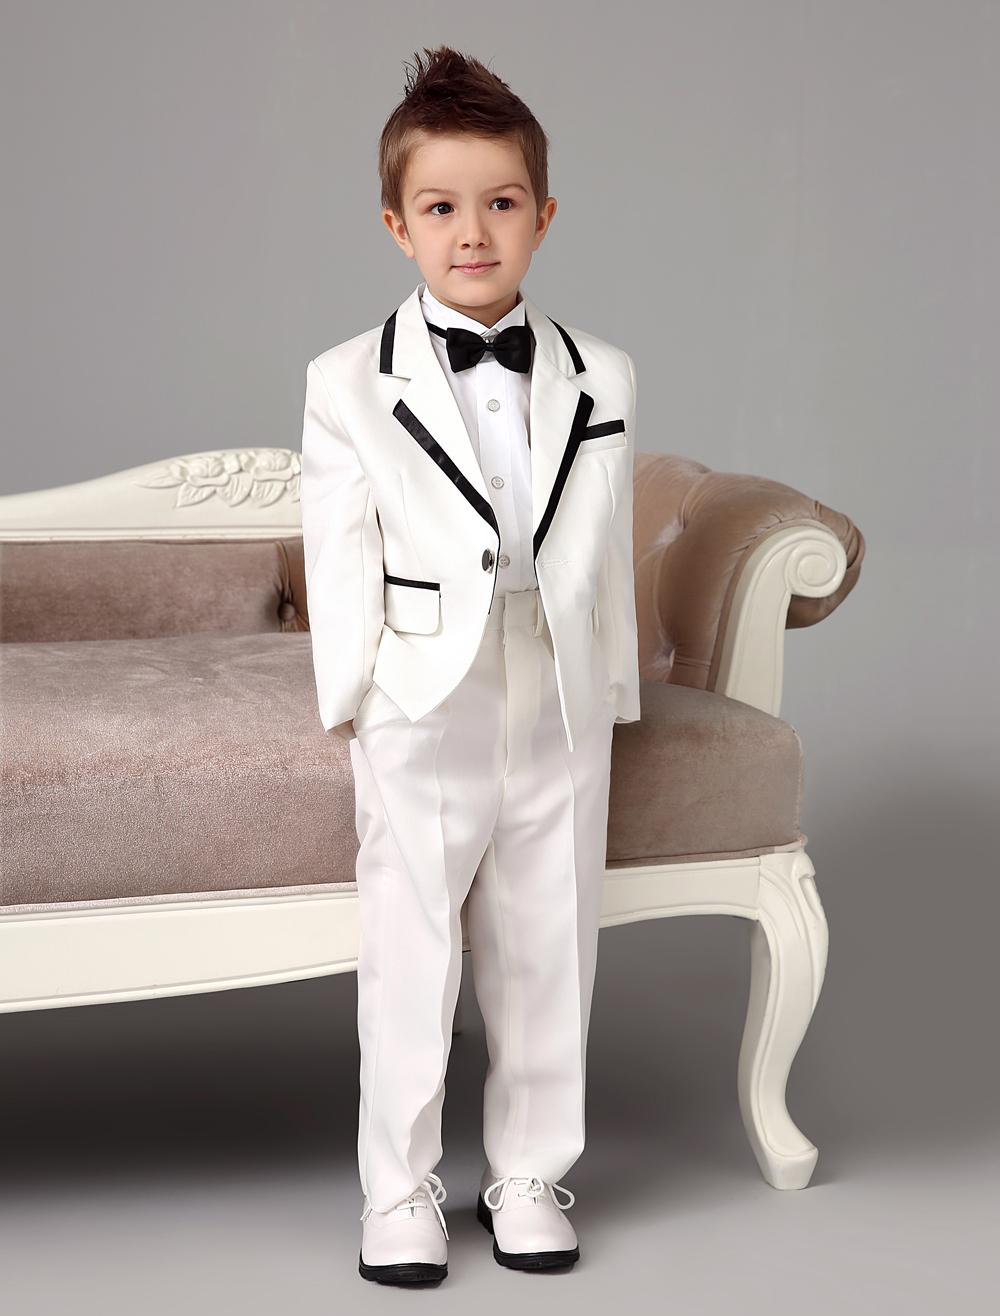 Selecting The Right Kids Suits For Your Child – careyfashion.com